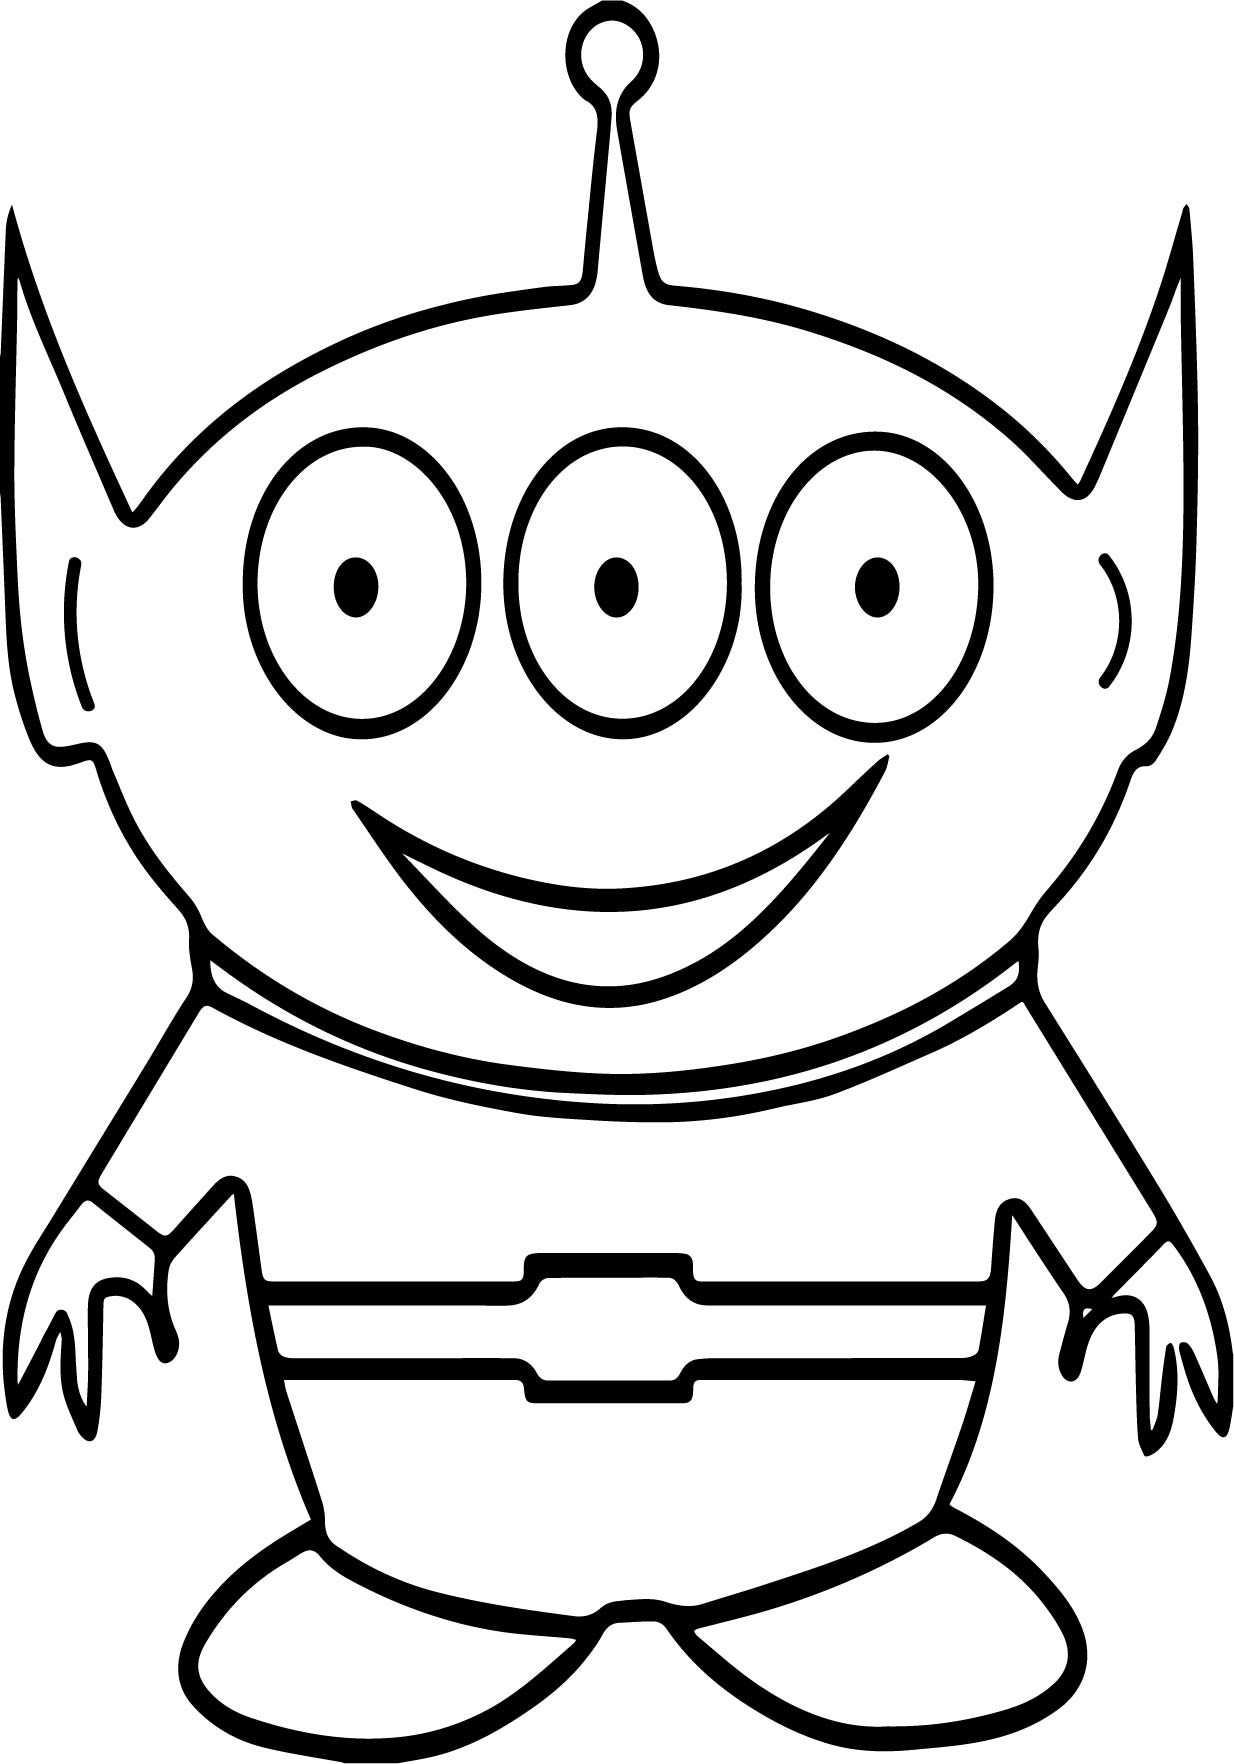 Three Eye Cute Alien Coloring Page Wecoloringpage Com